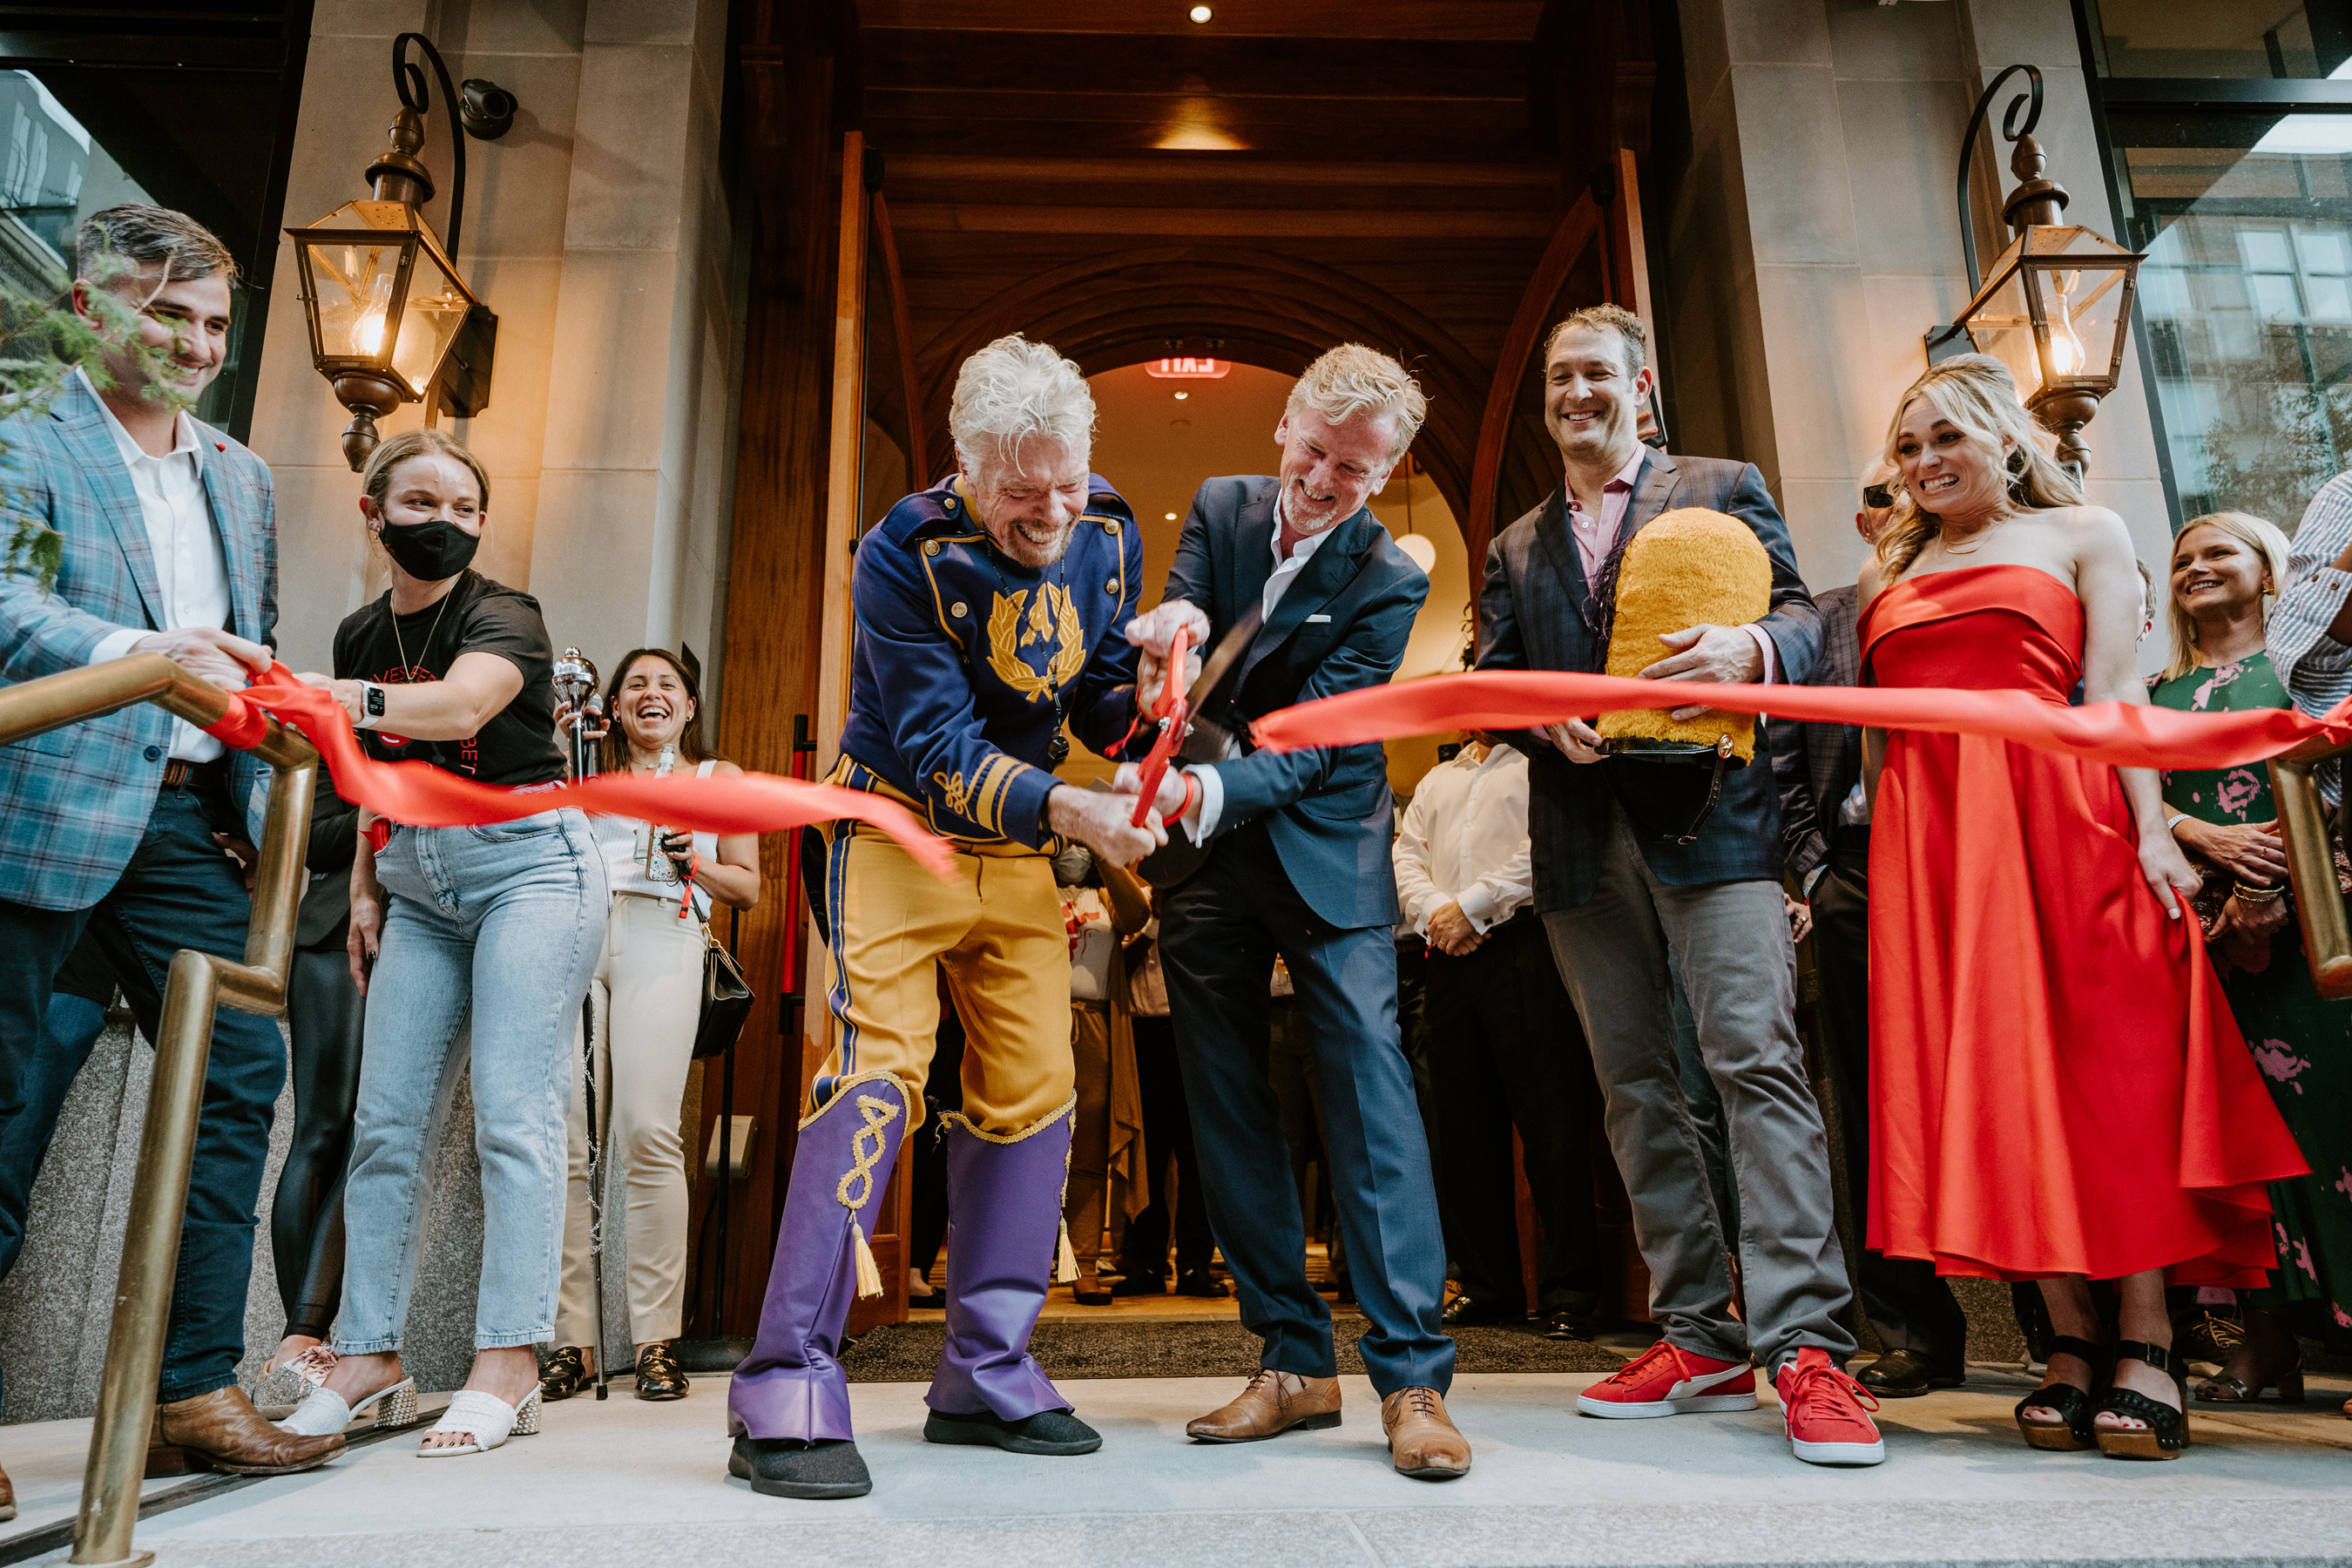 Pictured left to right:  Virgin Group founder Sir Richard Branson Virgin Hotels Chief Executive Officer James Bermingham cut the ribbon to celebrate the grand opening of Virgin Hotels New Orleans while Dave Pollin of Buccini/Pollin Group looks on.